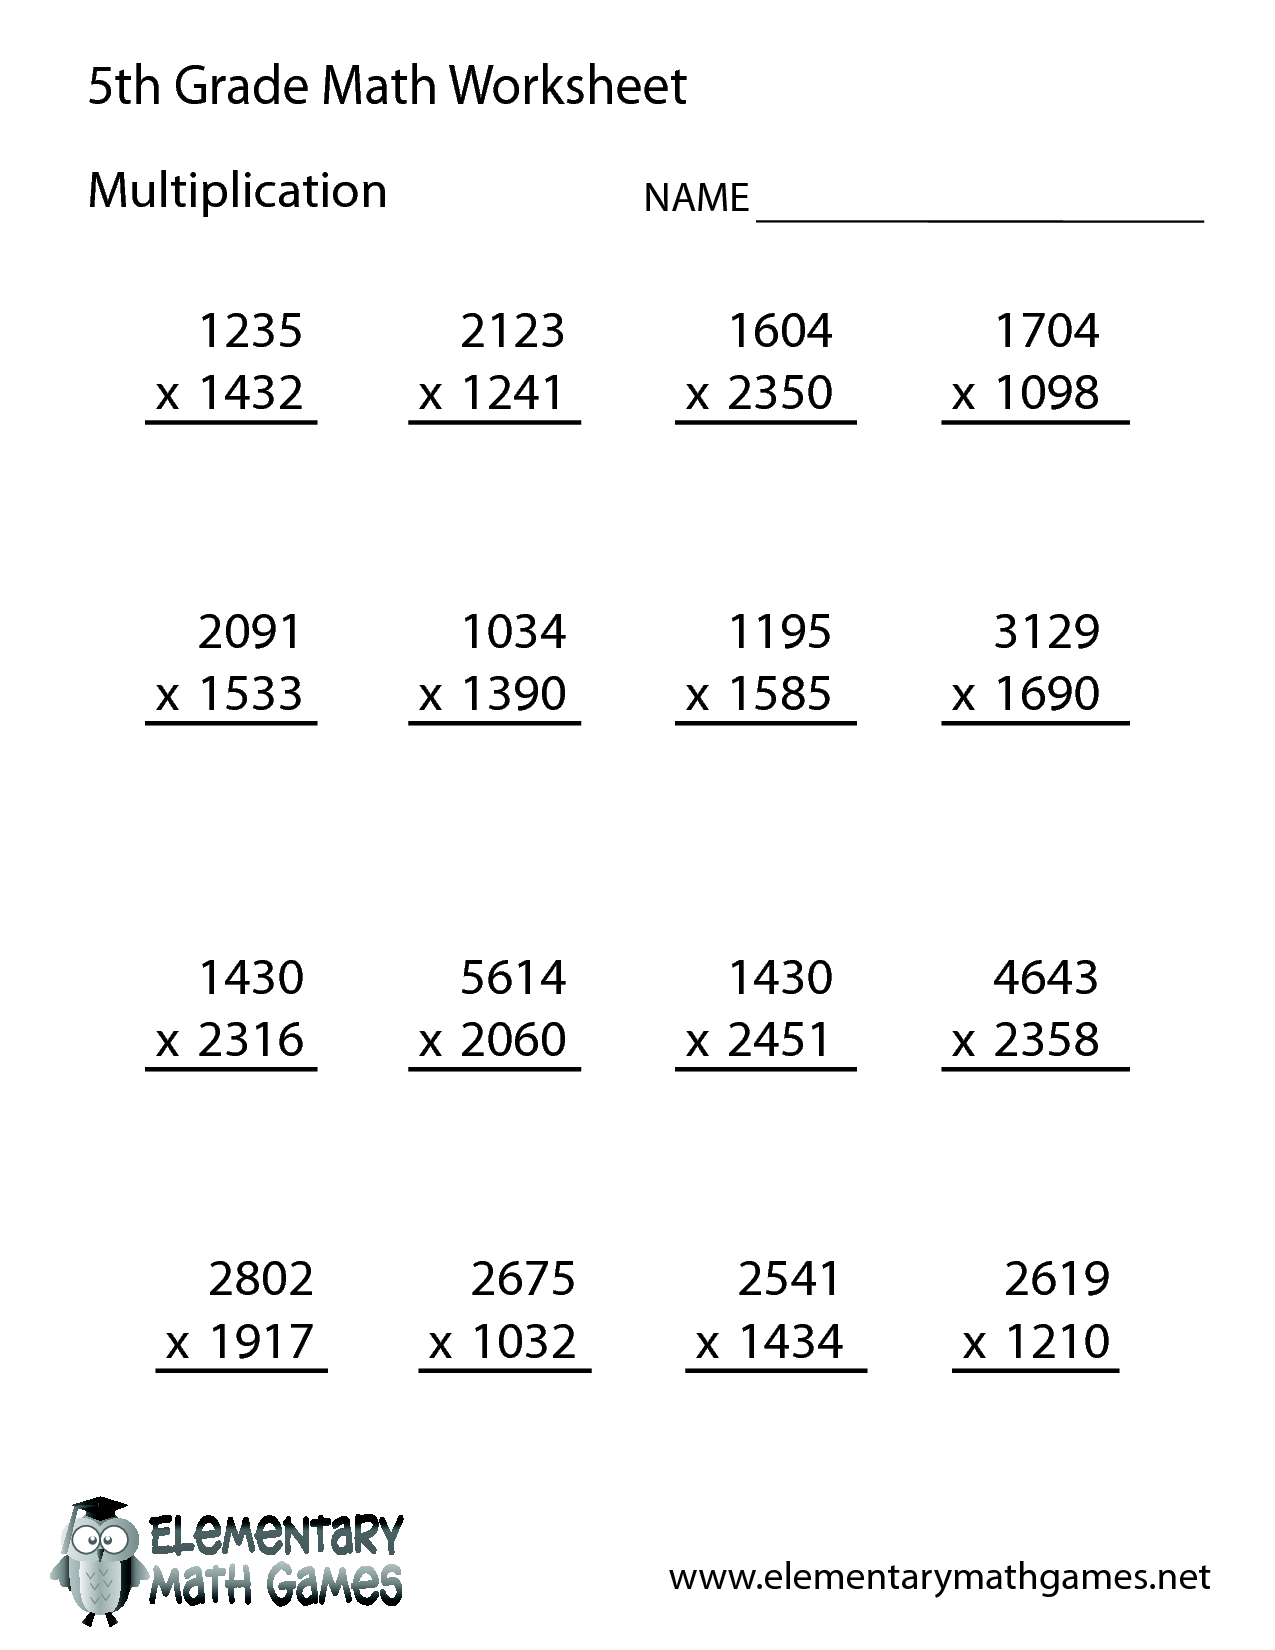 Uncategorized 5th Grade Math Worksheets free math worksheets for 5th grade worksheet worksheet